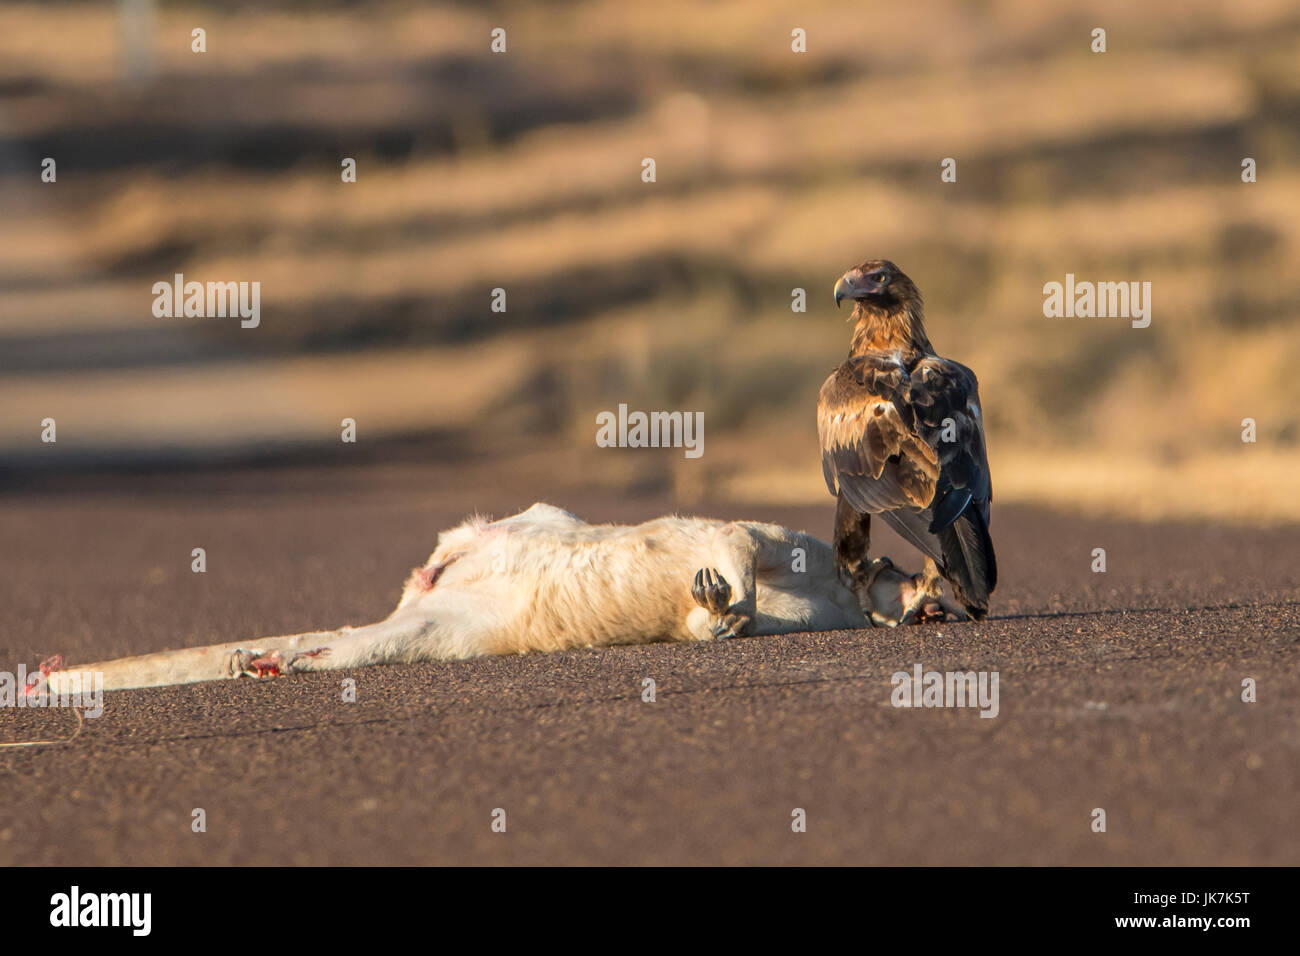 Wedge-tailed Eagle, Aquila audax and Roadkill - Stock Image